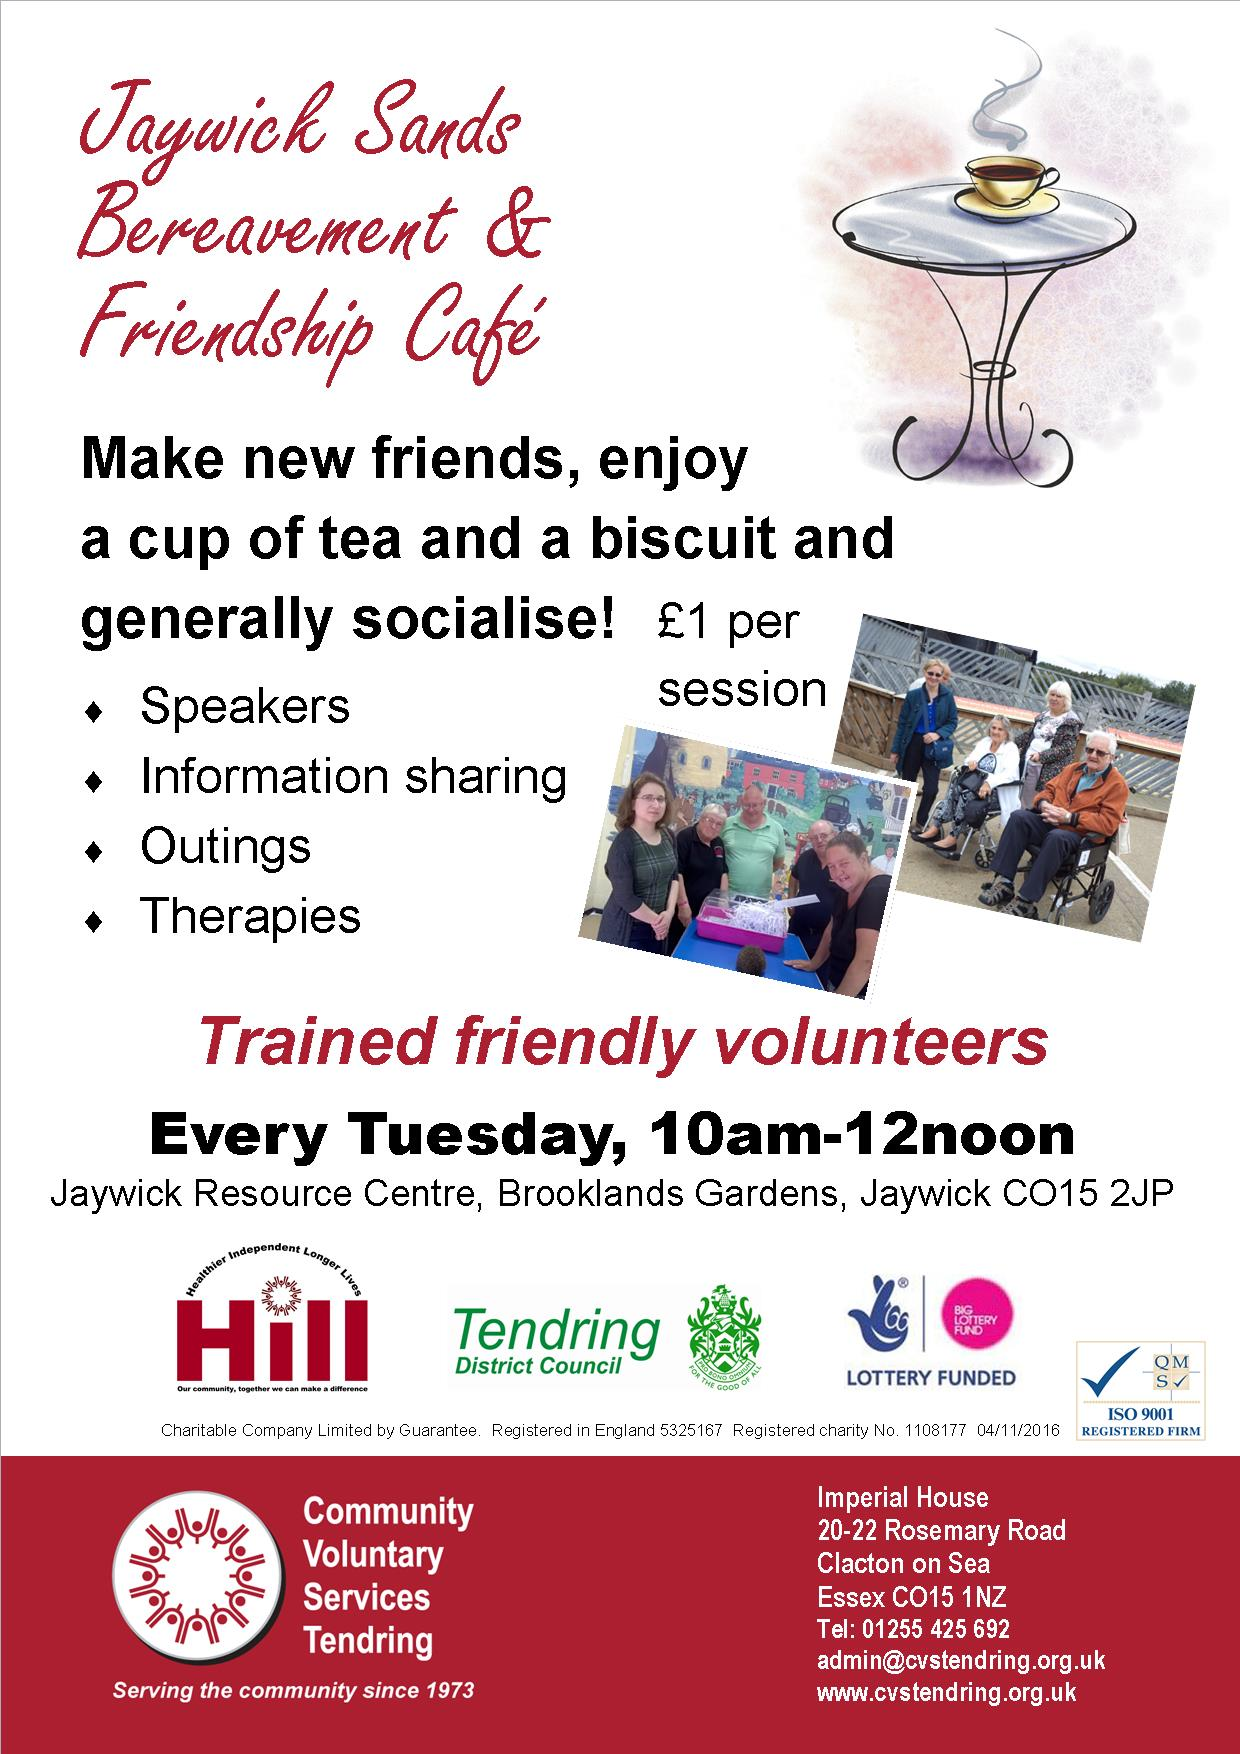 Jaywick Sands Bereavement and Friendship Cafe